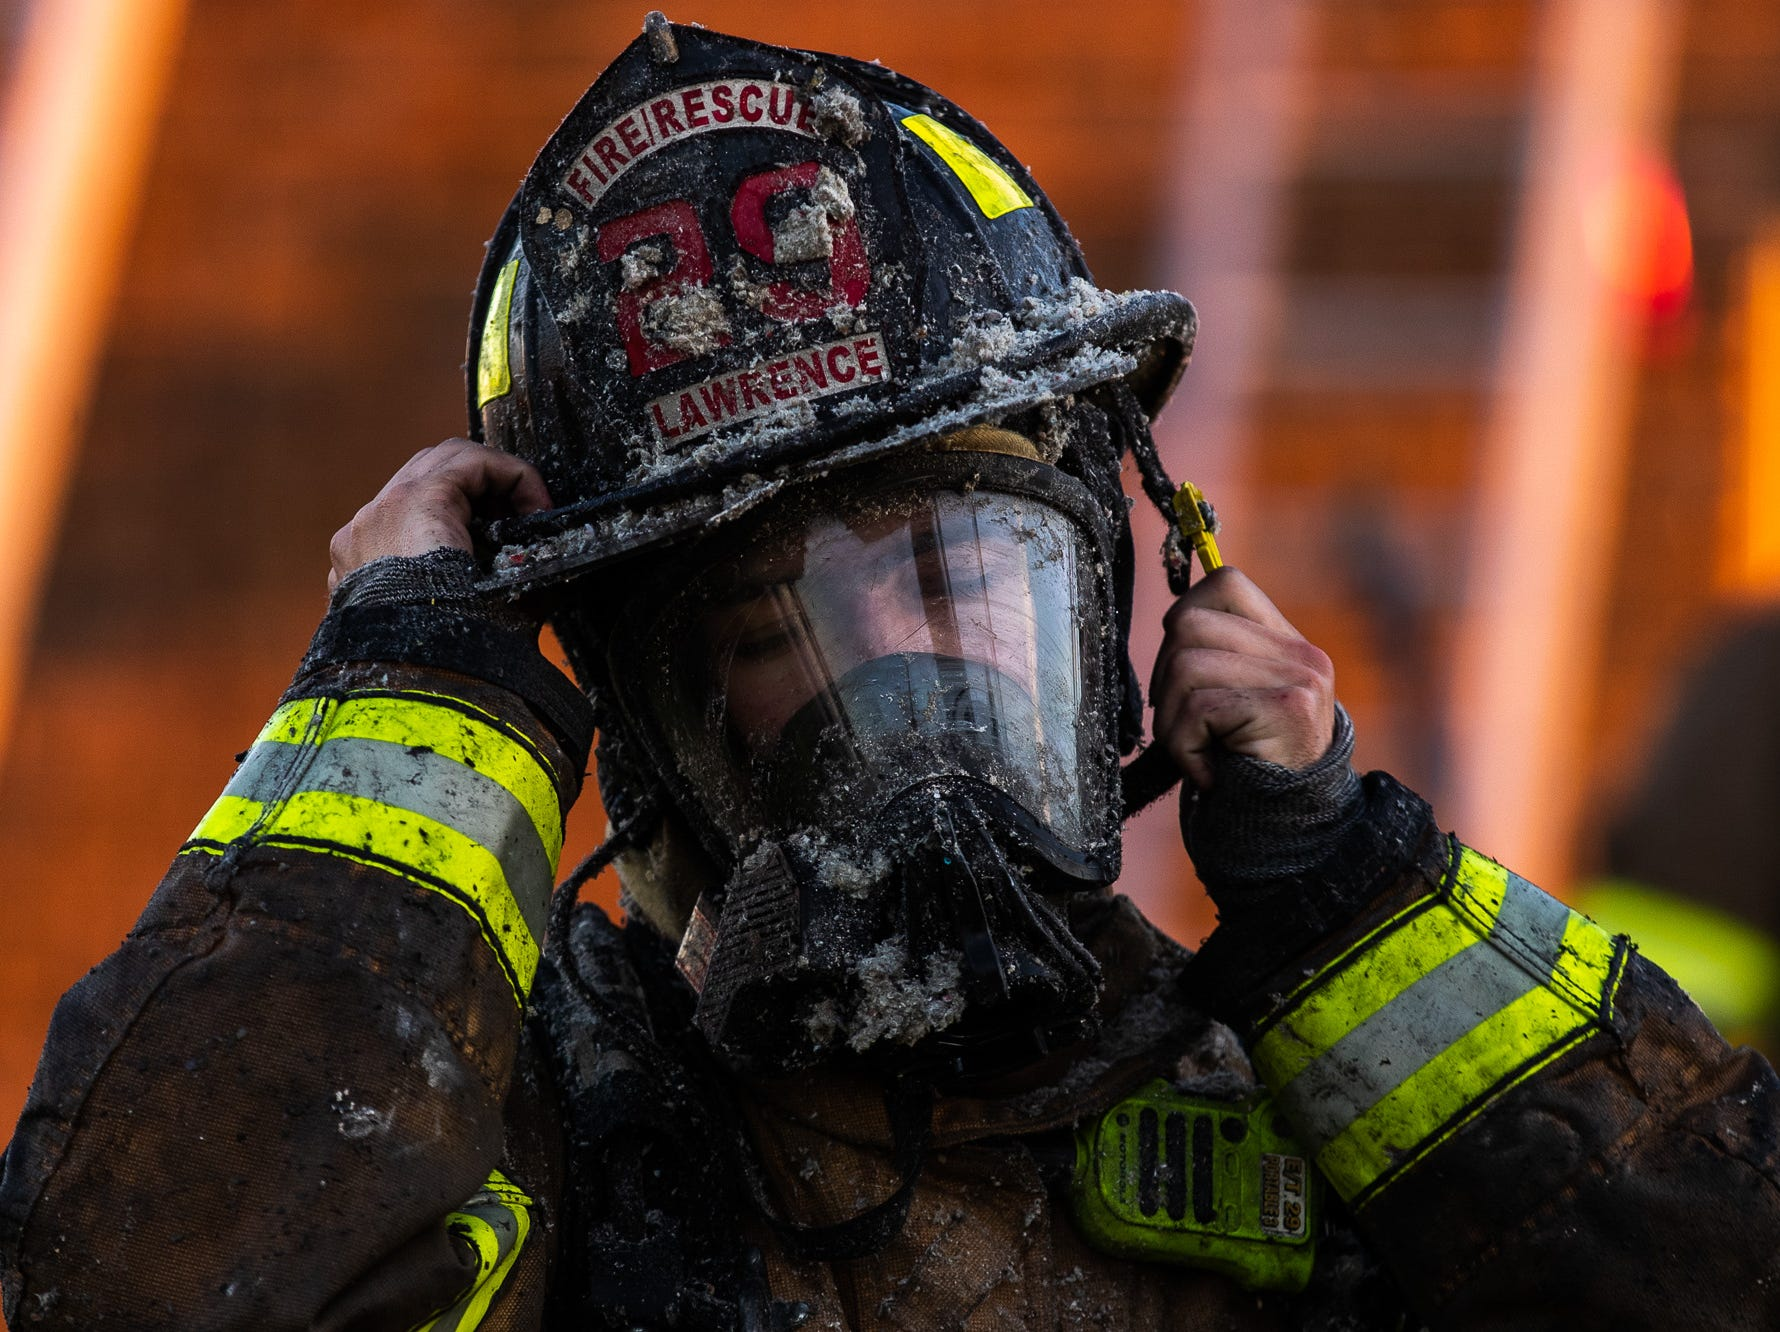 A firefighter is covered in ash as he removes his gear at the scene of a second-alarm heavily engulfed house fire with entrapment on the 800 block of Two Taverns Road, Saturday, Nov. 3, 2018, in Mount Pleasant Township. Firefighters rescued a young child from the second floor of the house while facing heavy wind-driven fire, said United Hook and Ladder Chief Steve Rabine.